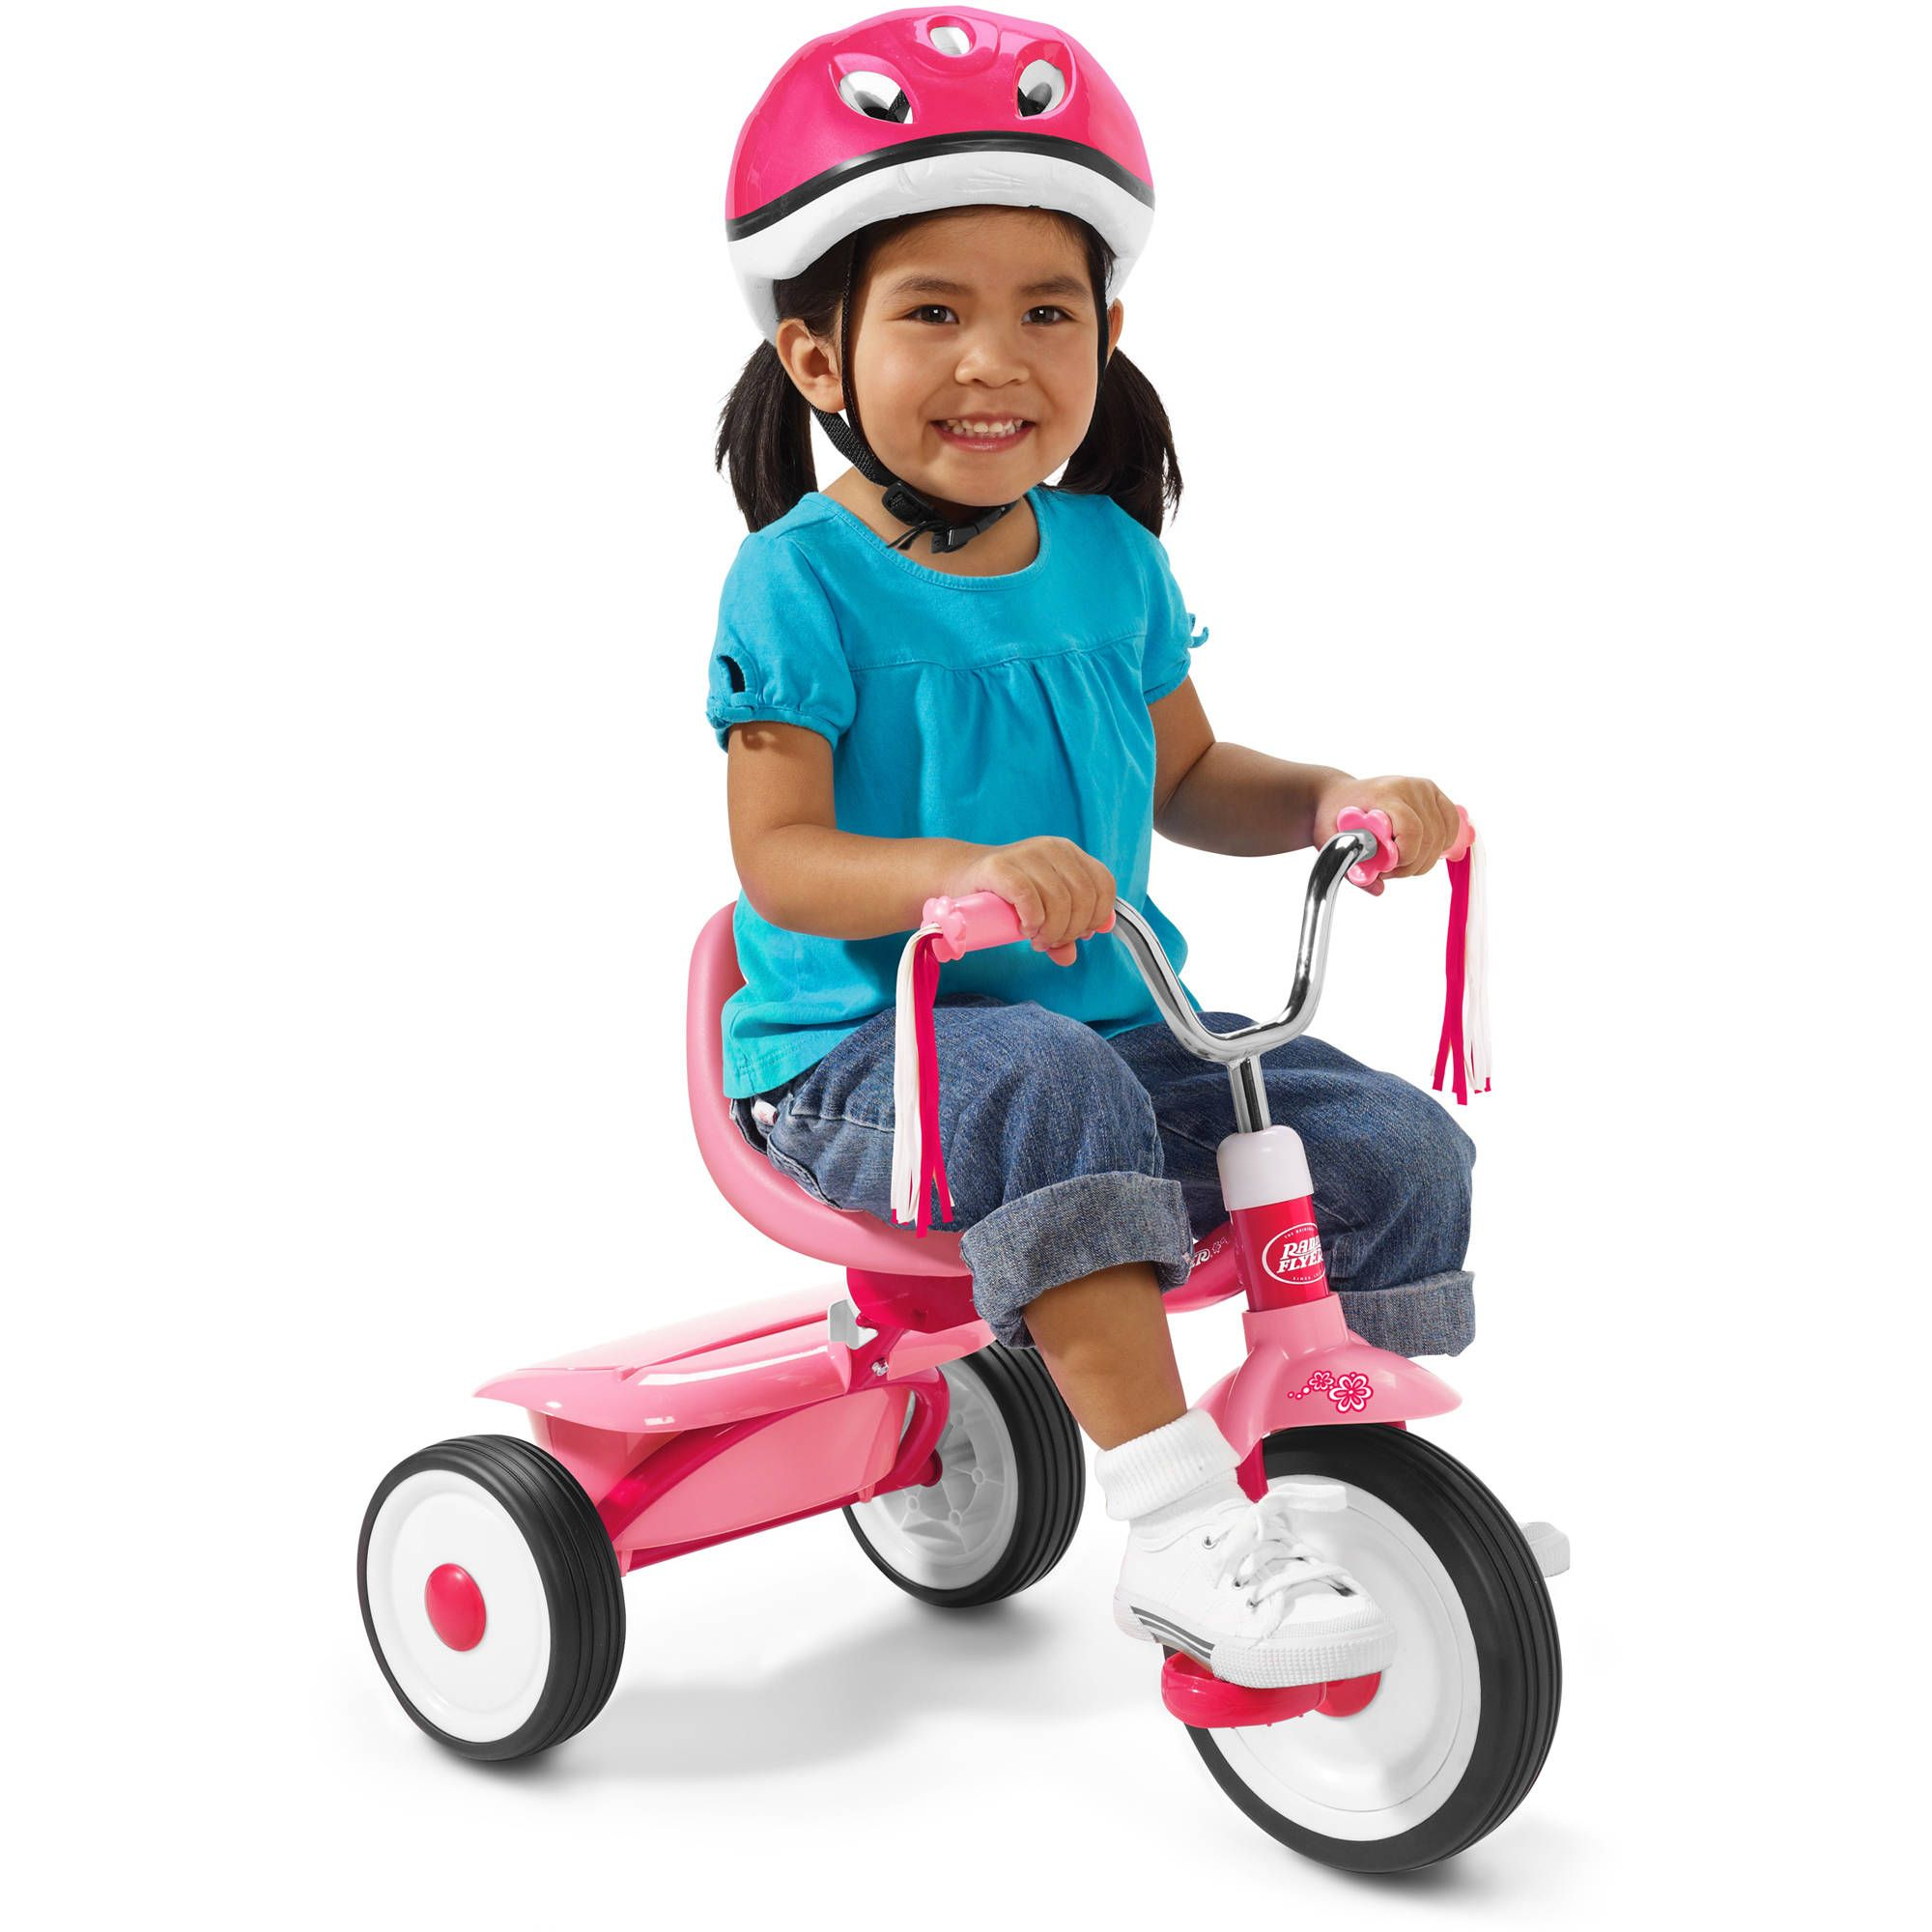 Image result for toddler on tricycle